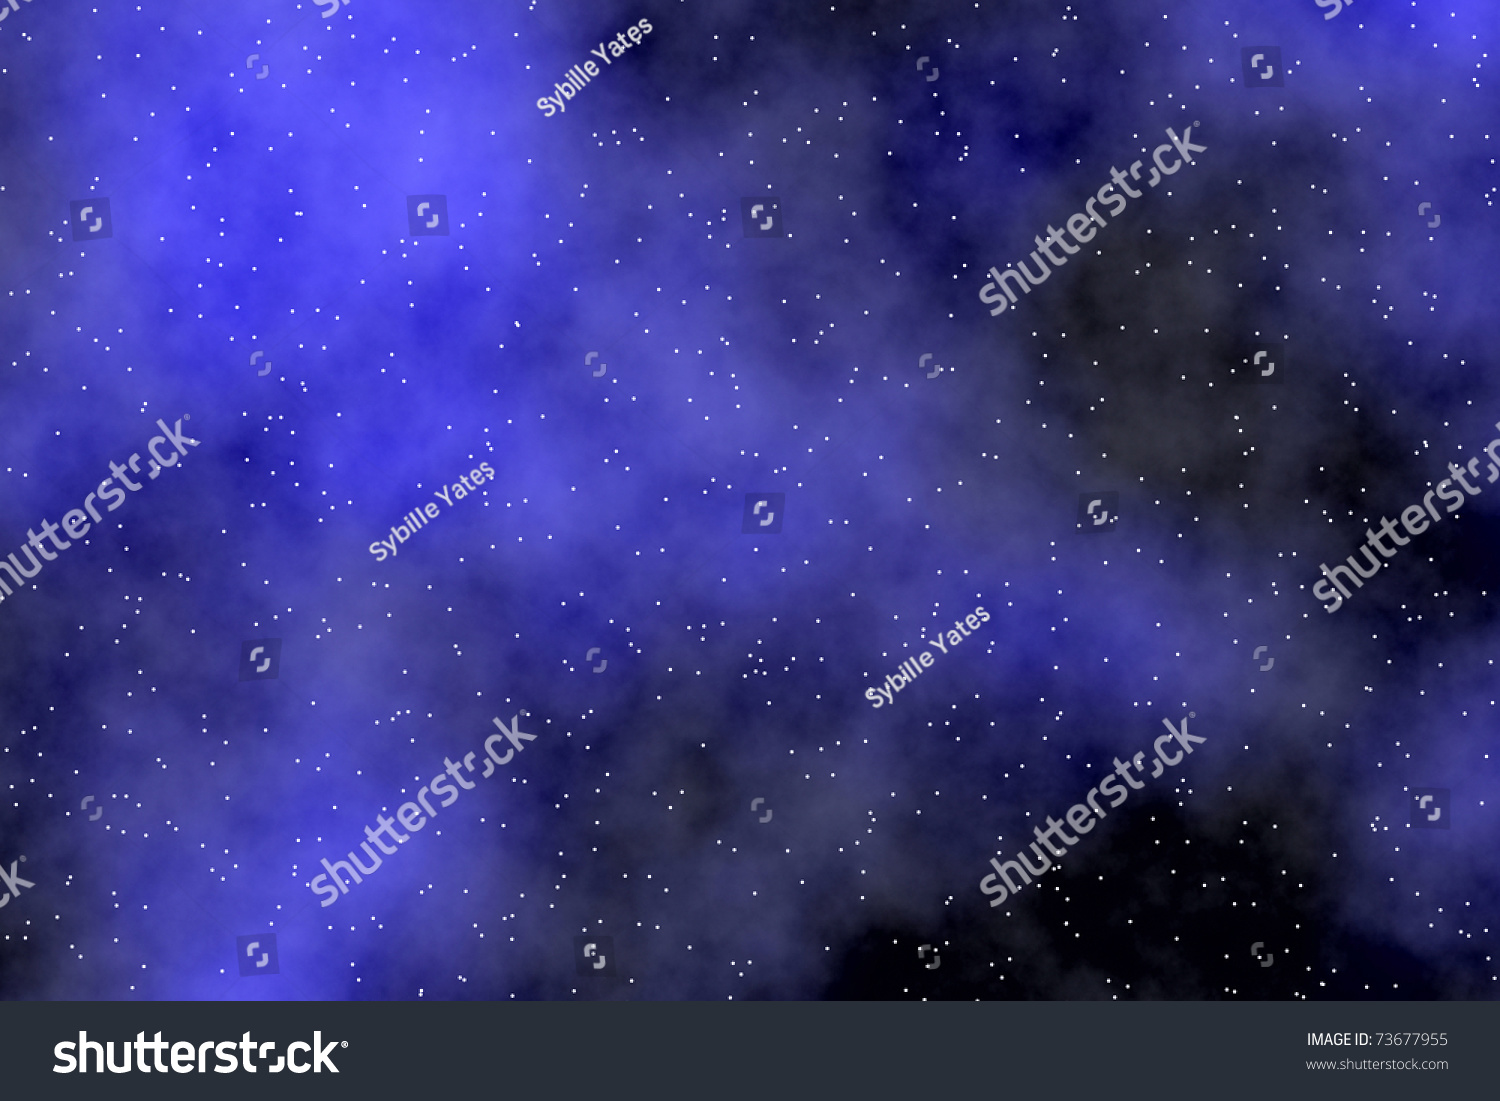 Night Sky Wallpaper With Aurora Borealis Tiny Stars And Dreamy Effect